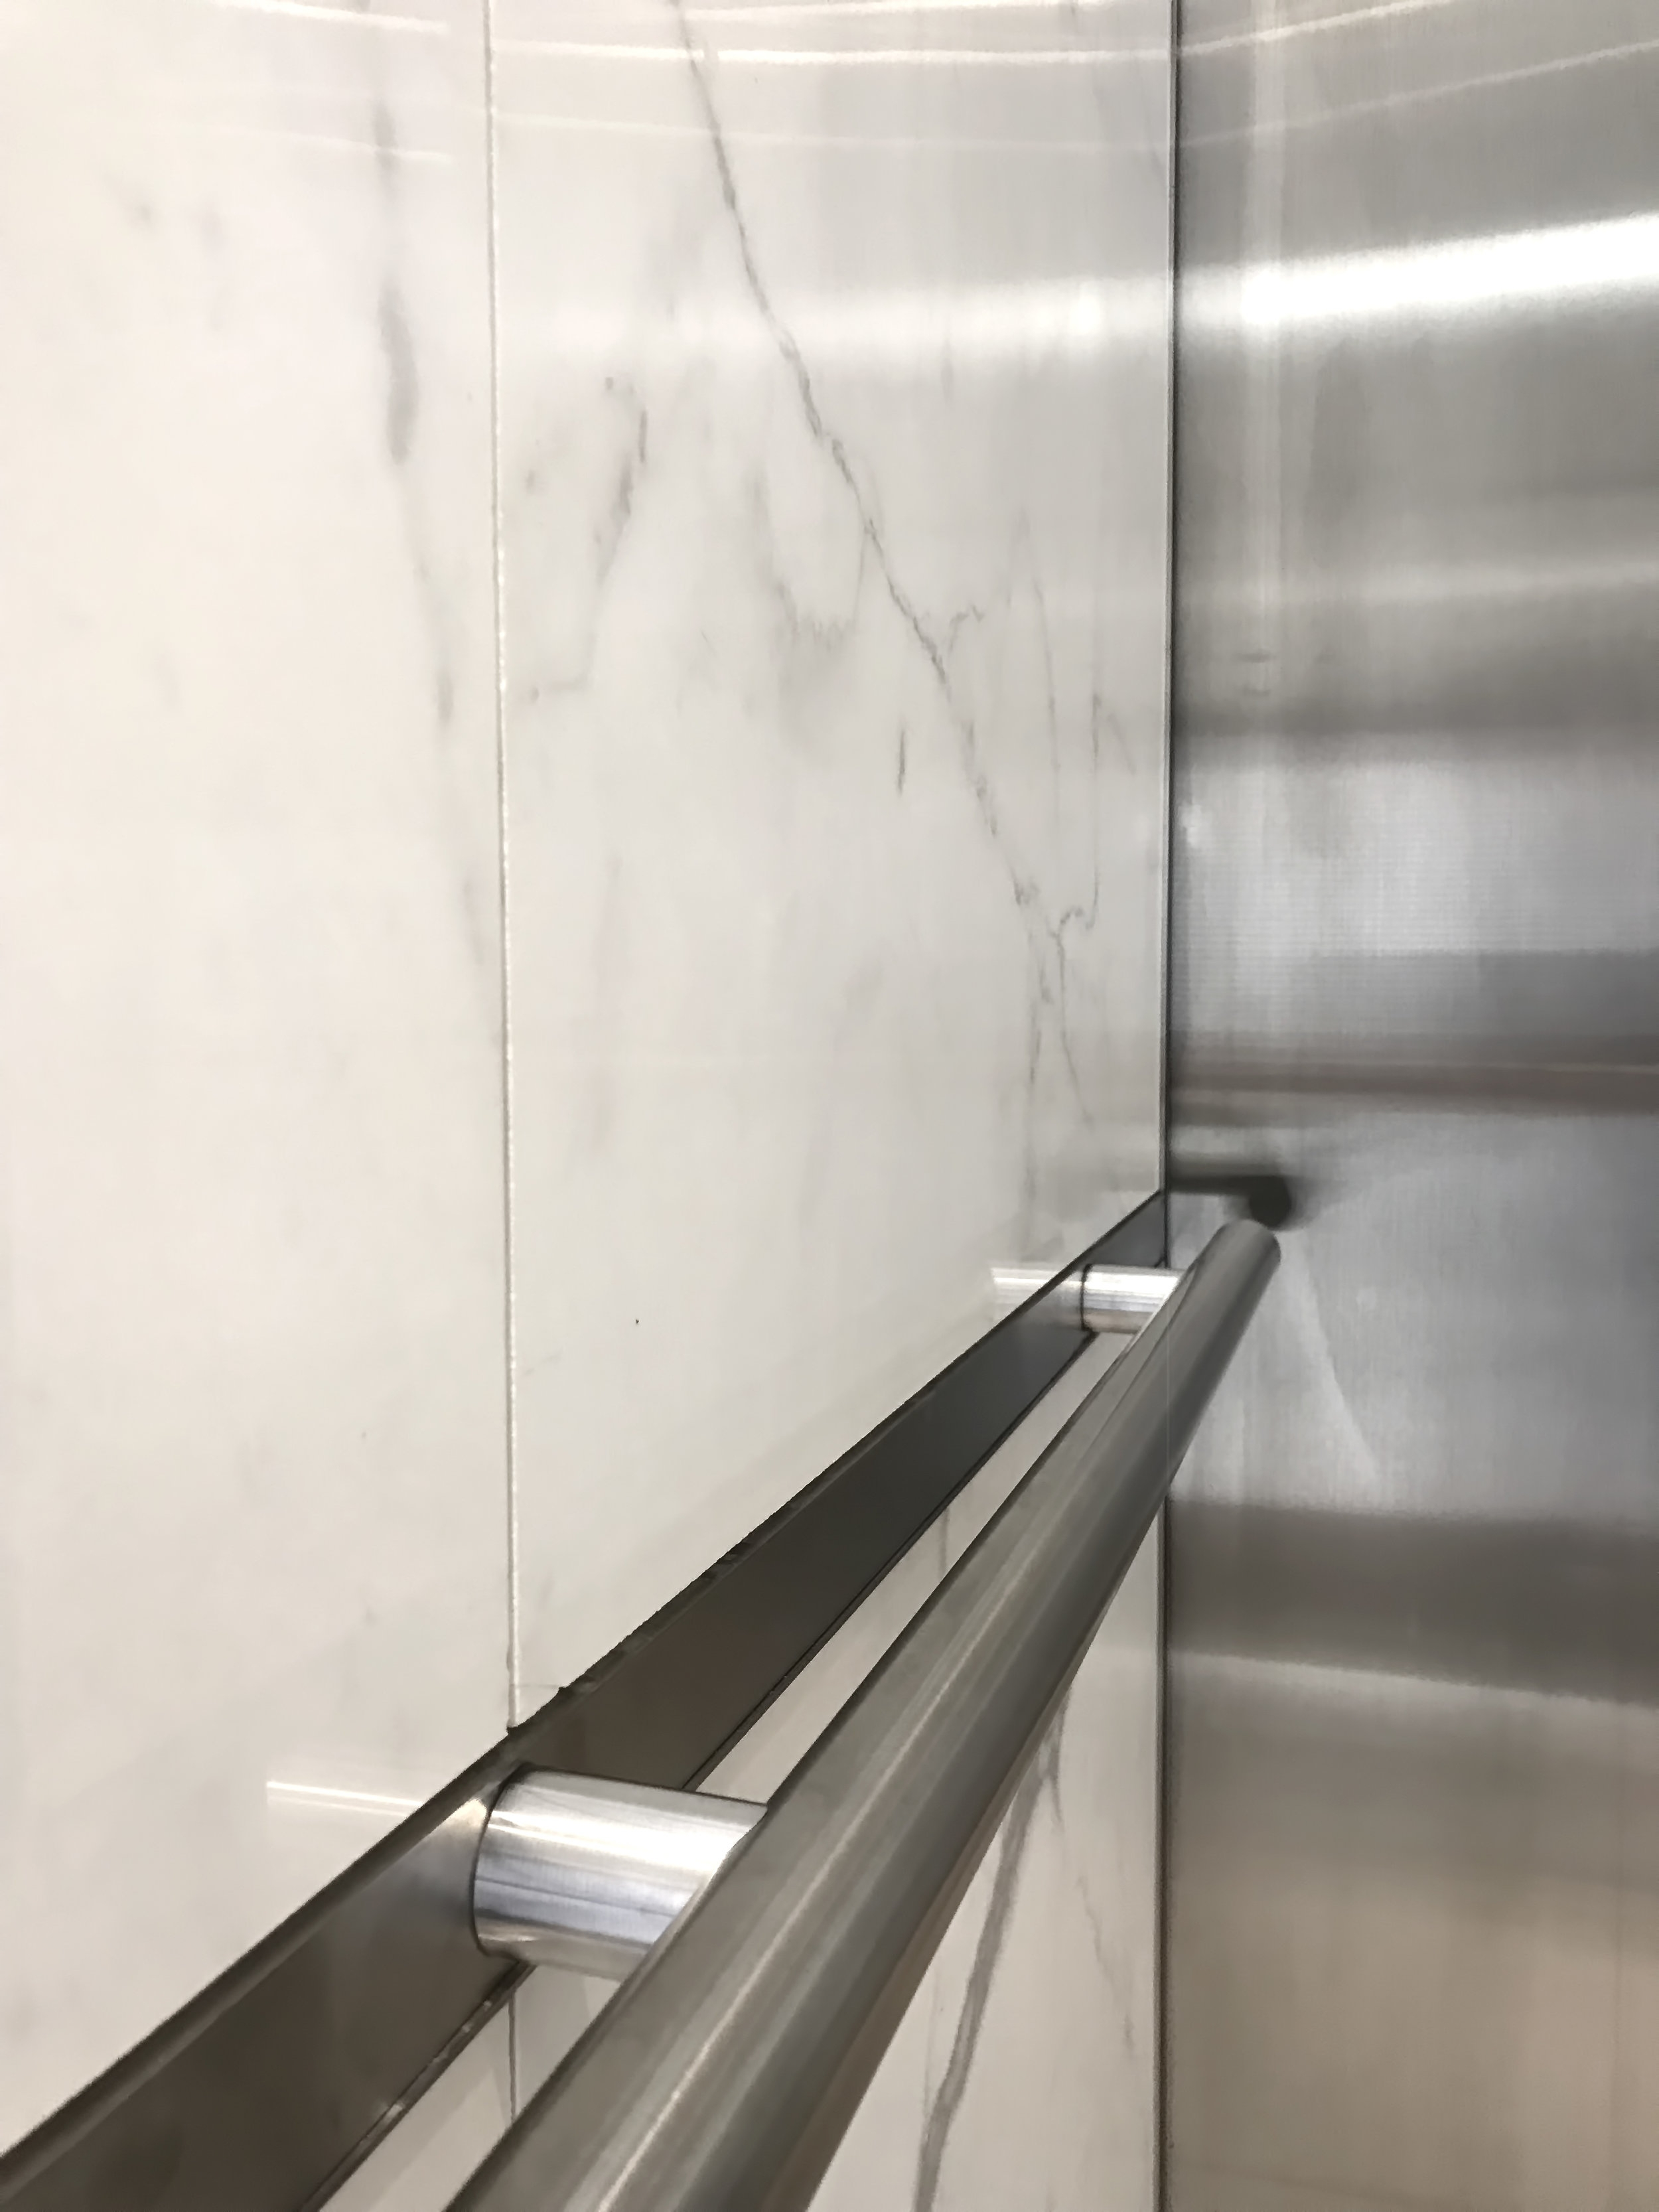 Elevator Handrail Products Designs — Elevator Scene | Brushed Stainless Steel Handrail | Rectangle | Glass Panel Wooden Handrail | Brushed Chrome | Matte Finish | Flat Bar Steel